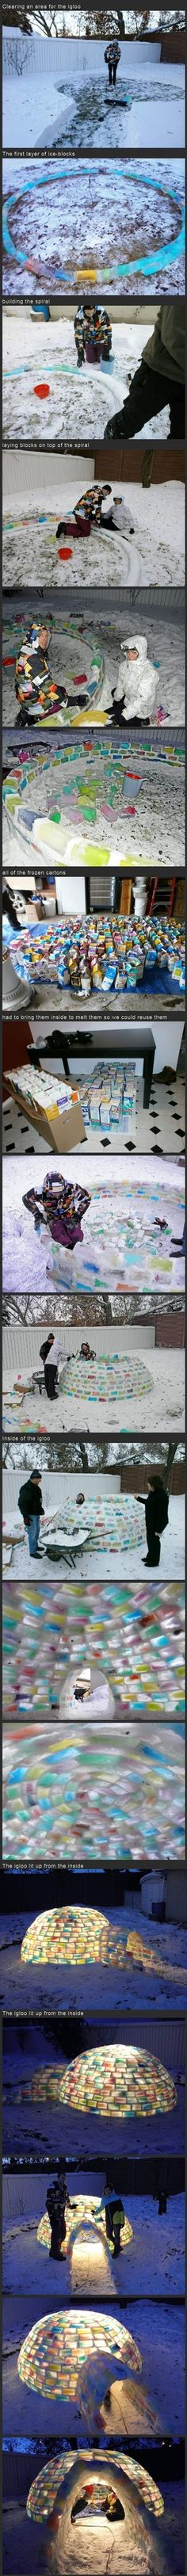 Colored ice igloo - this is SO cool! I don't have enough patience to do this.